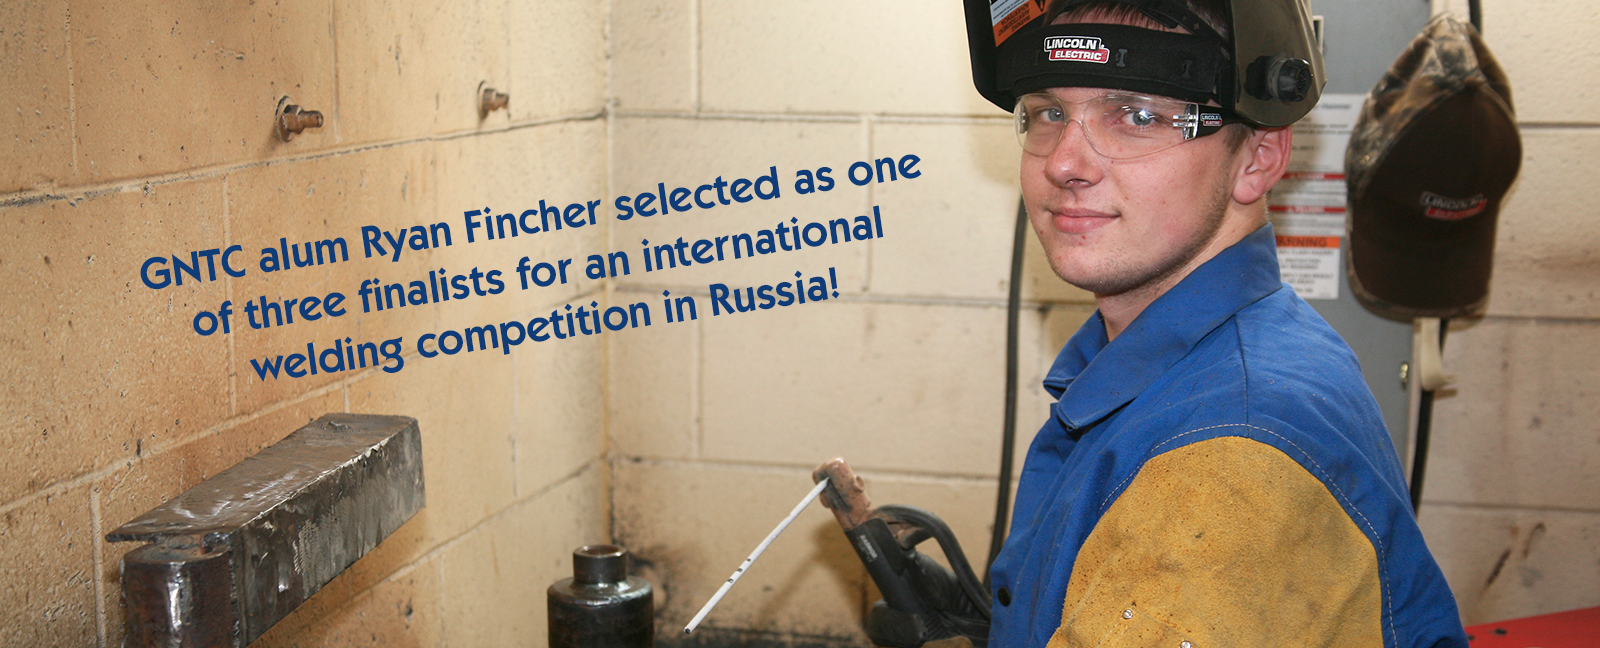 GNTC alum Ryan Fincher selected as one of three 